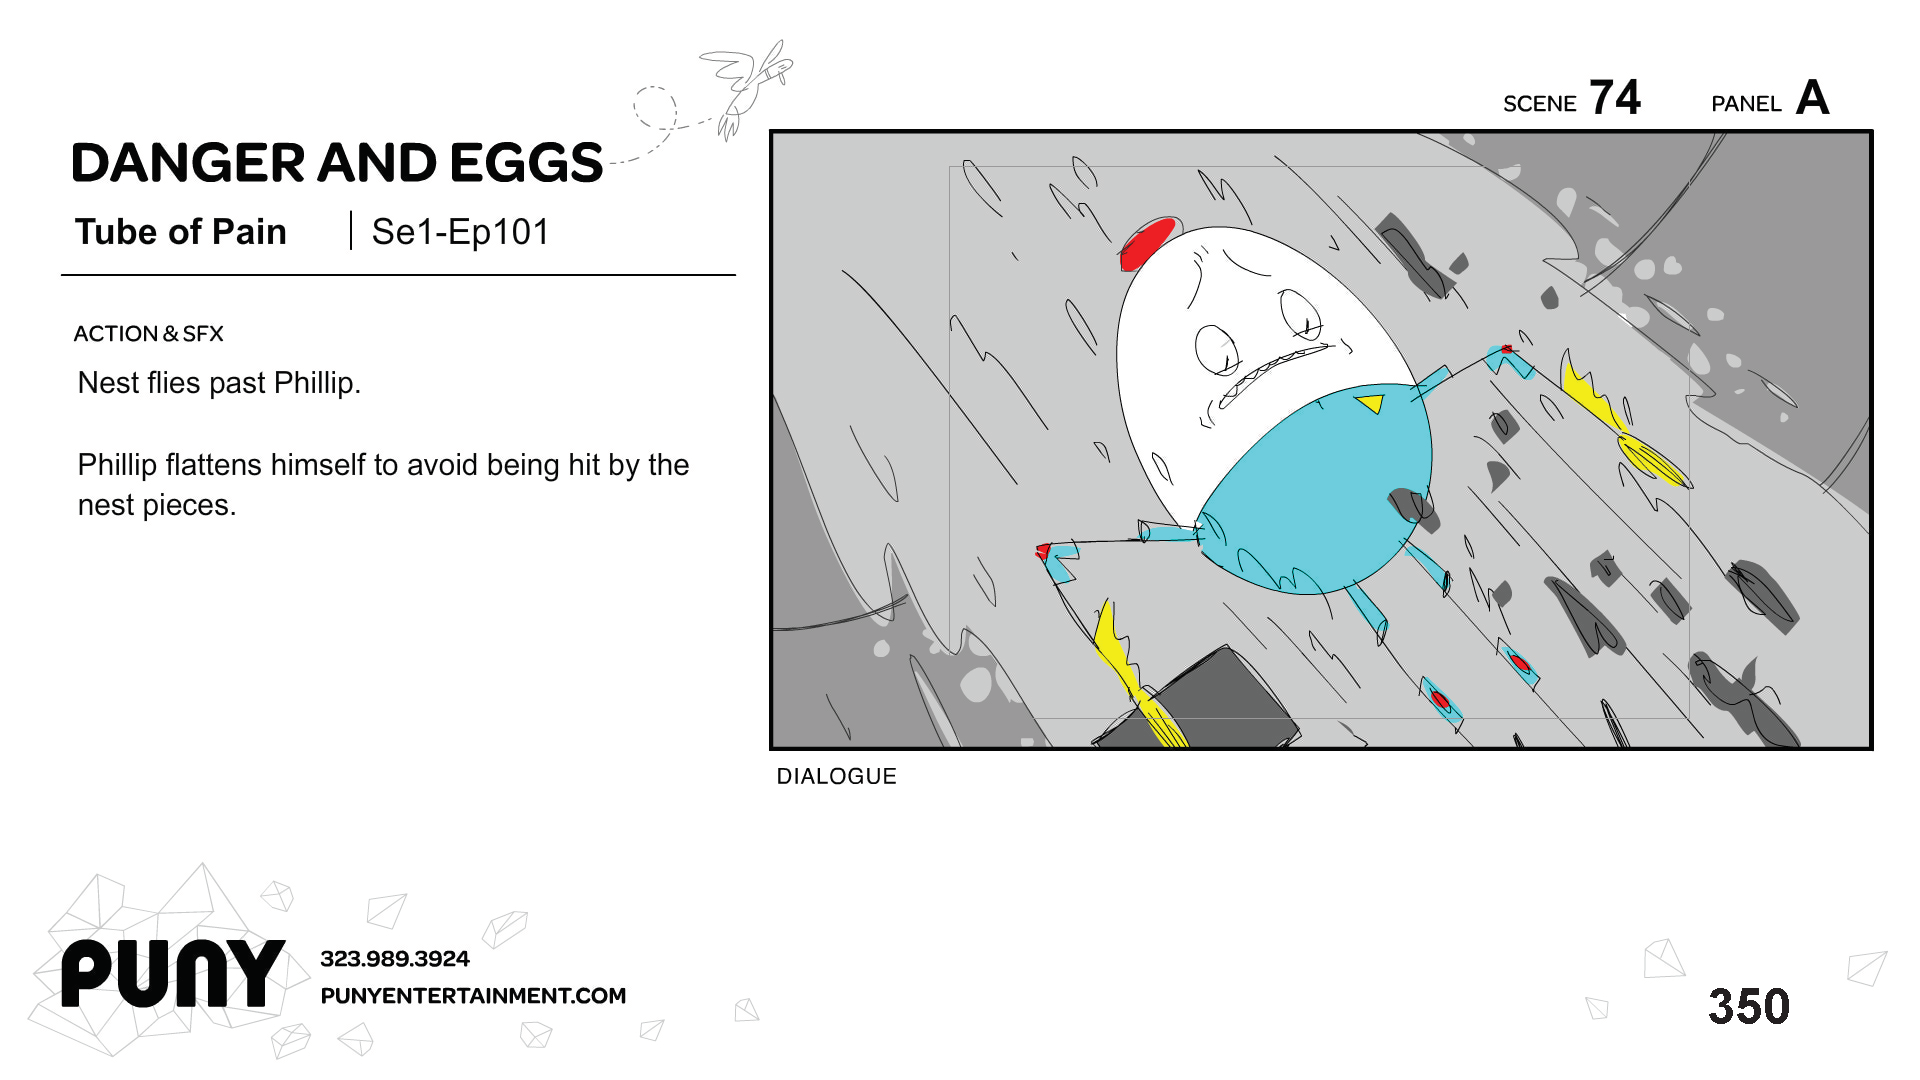 MikeOwens_STORYBOARDS_DangerAndEggs_Page_245.png